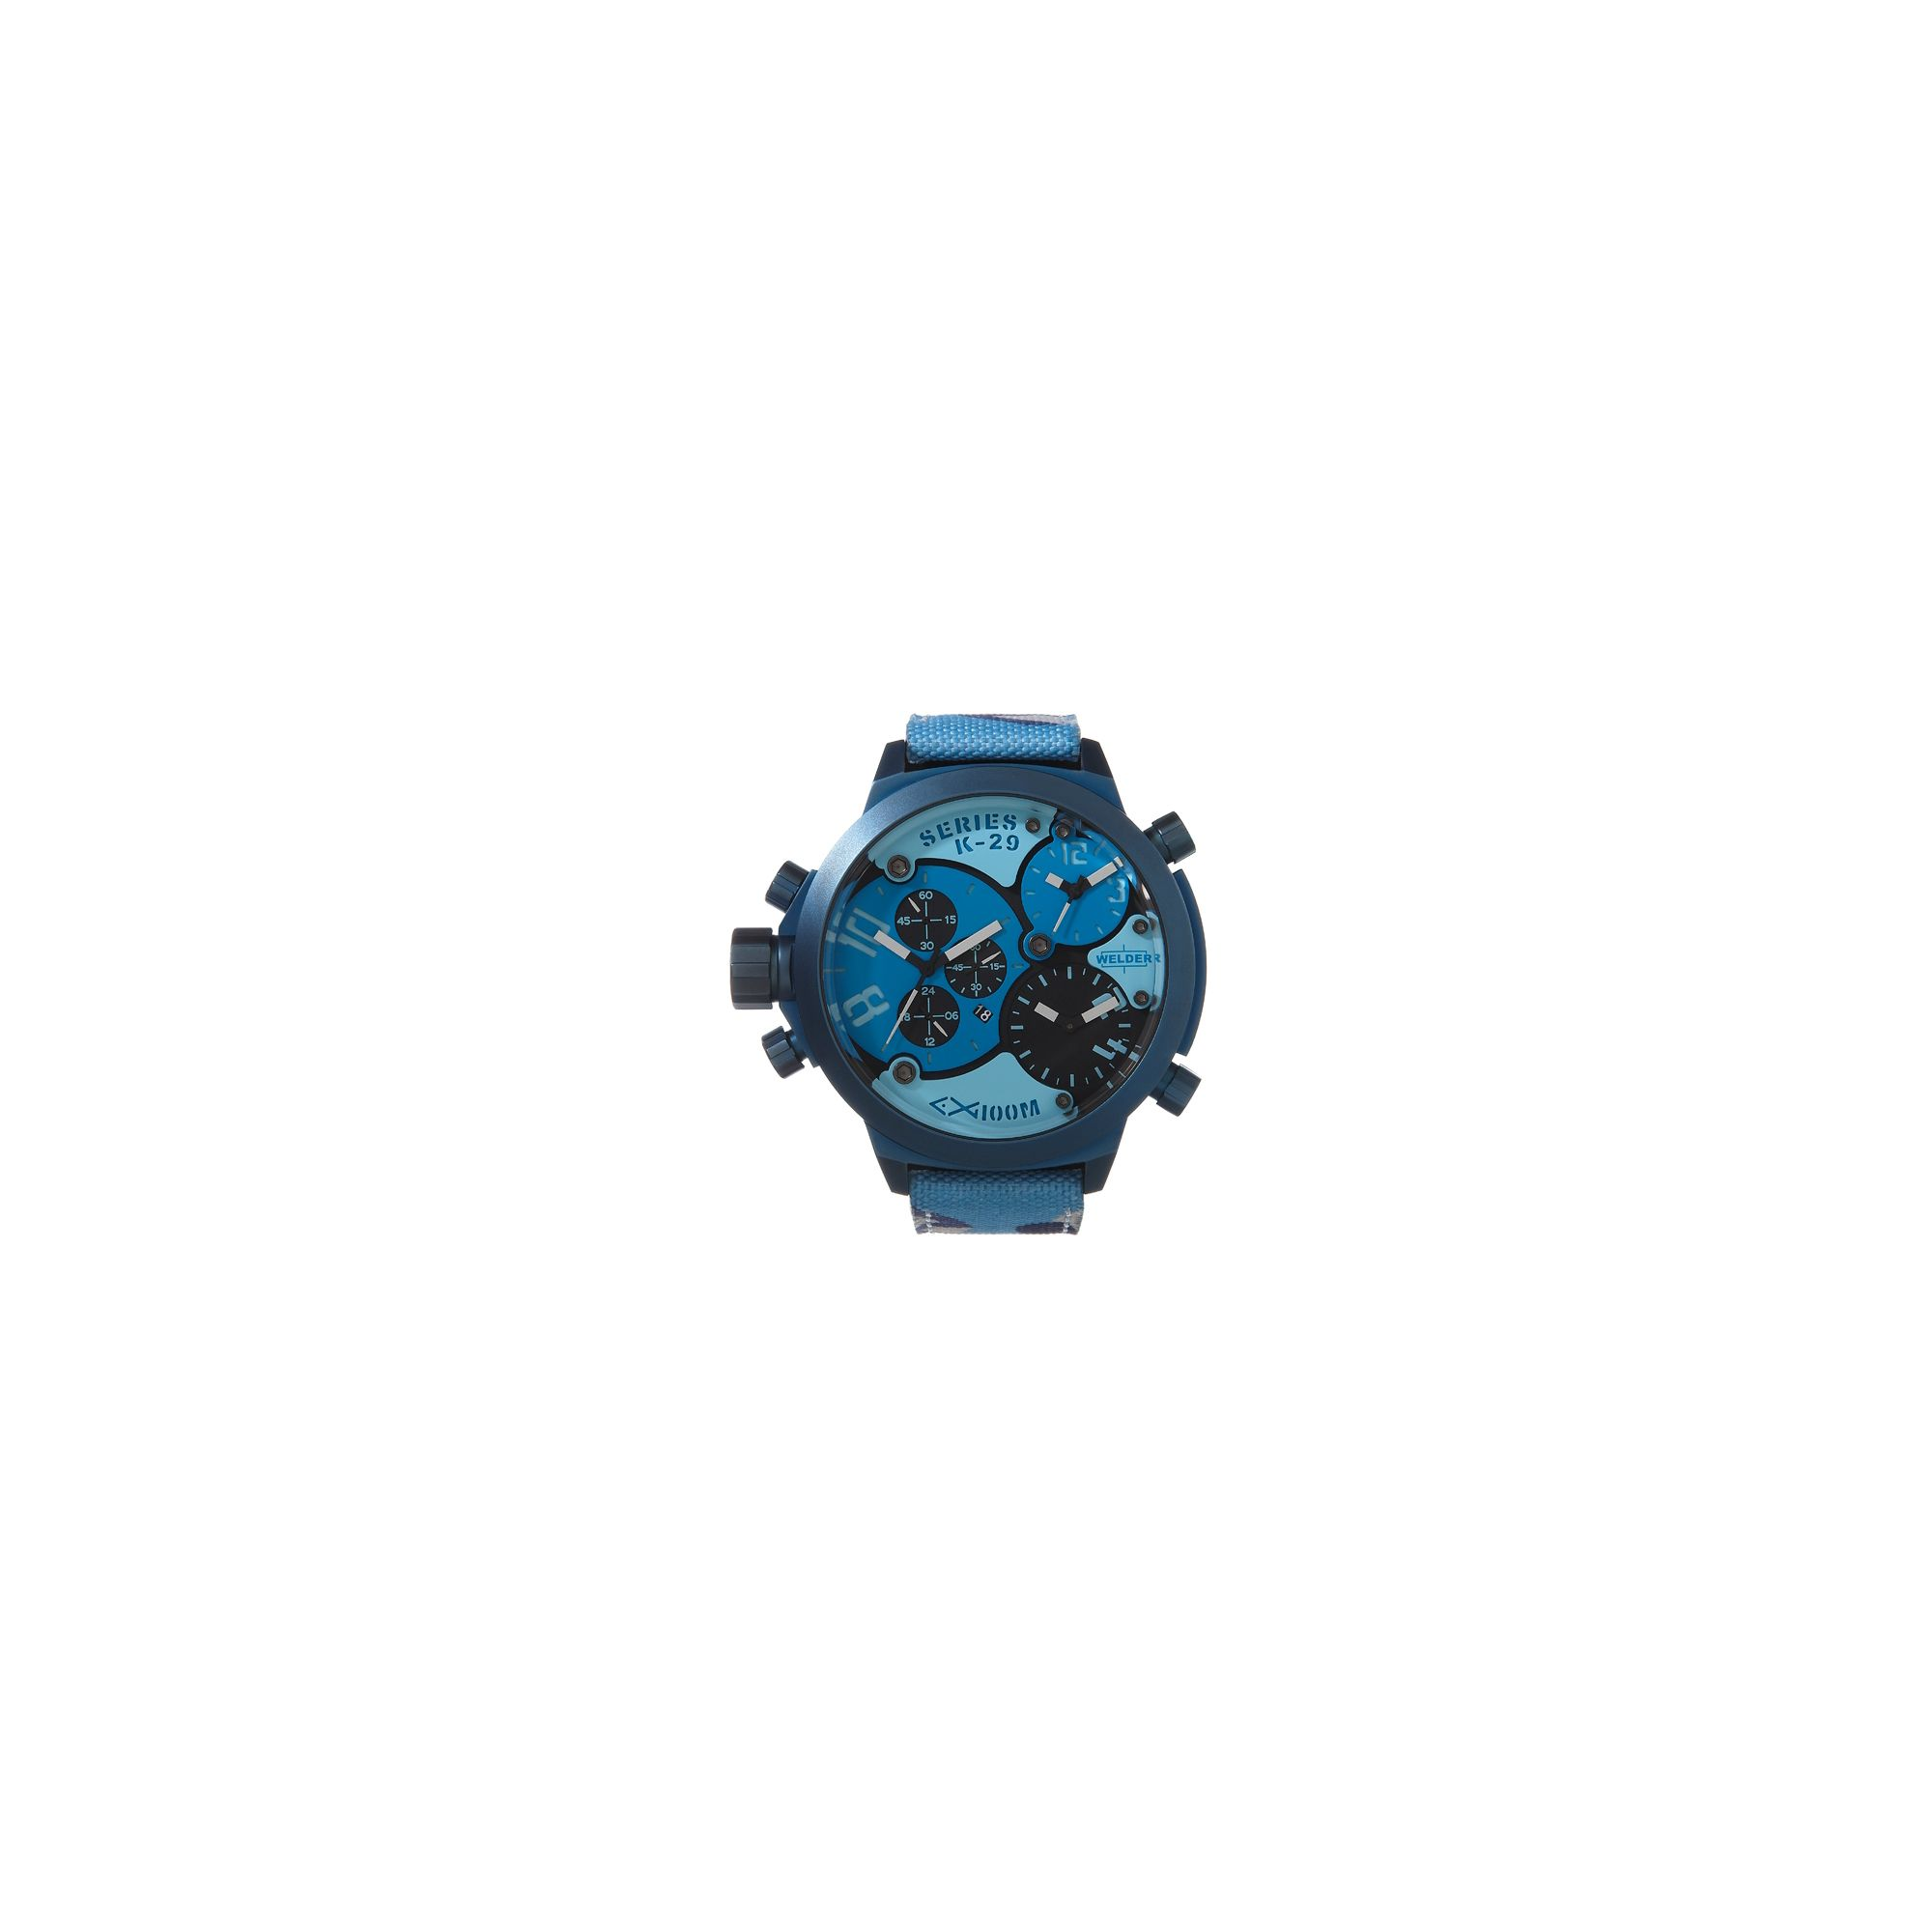 Welder Gents Blue Dial Camouflage Material Strap Watch K29-8006 at Tesco Direct